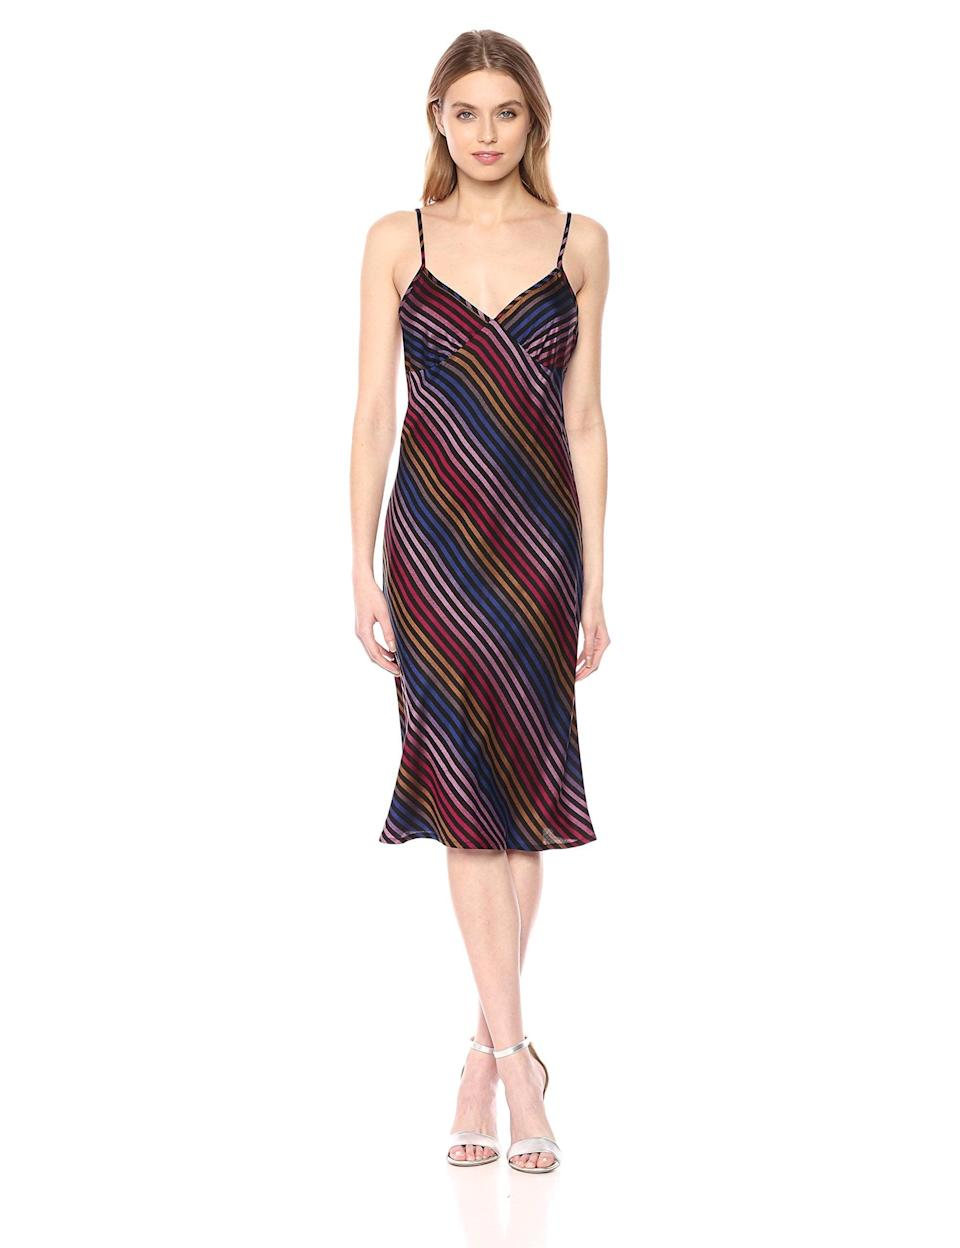 """<br><br><strong>Only Hearts</strong> Riley Slip Dress, $, available at <a href=""""https://amzn.to/3vmU3R5"""" rel=""""nofollow noopener"""" target=""""_blank"""" data-ylk=""""slk:Amazon"""" class=""""link rapid-noclick-resp"""">Amazon</a>"""